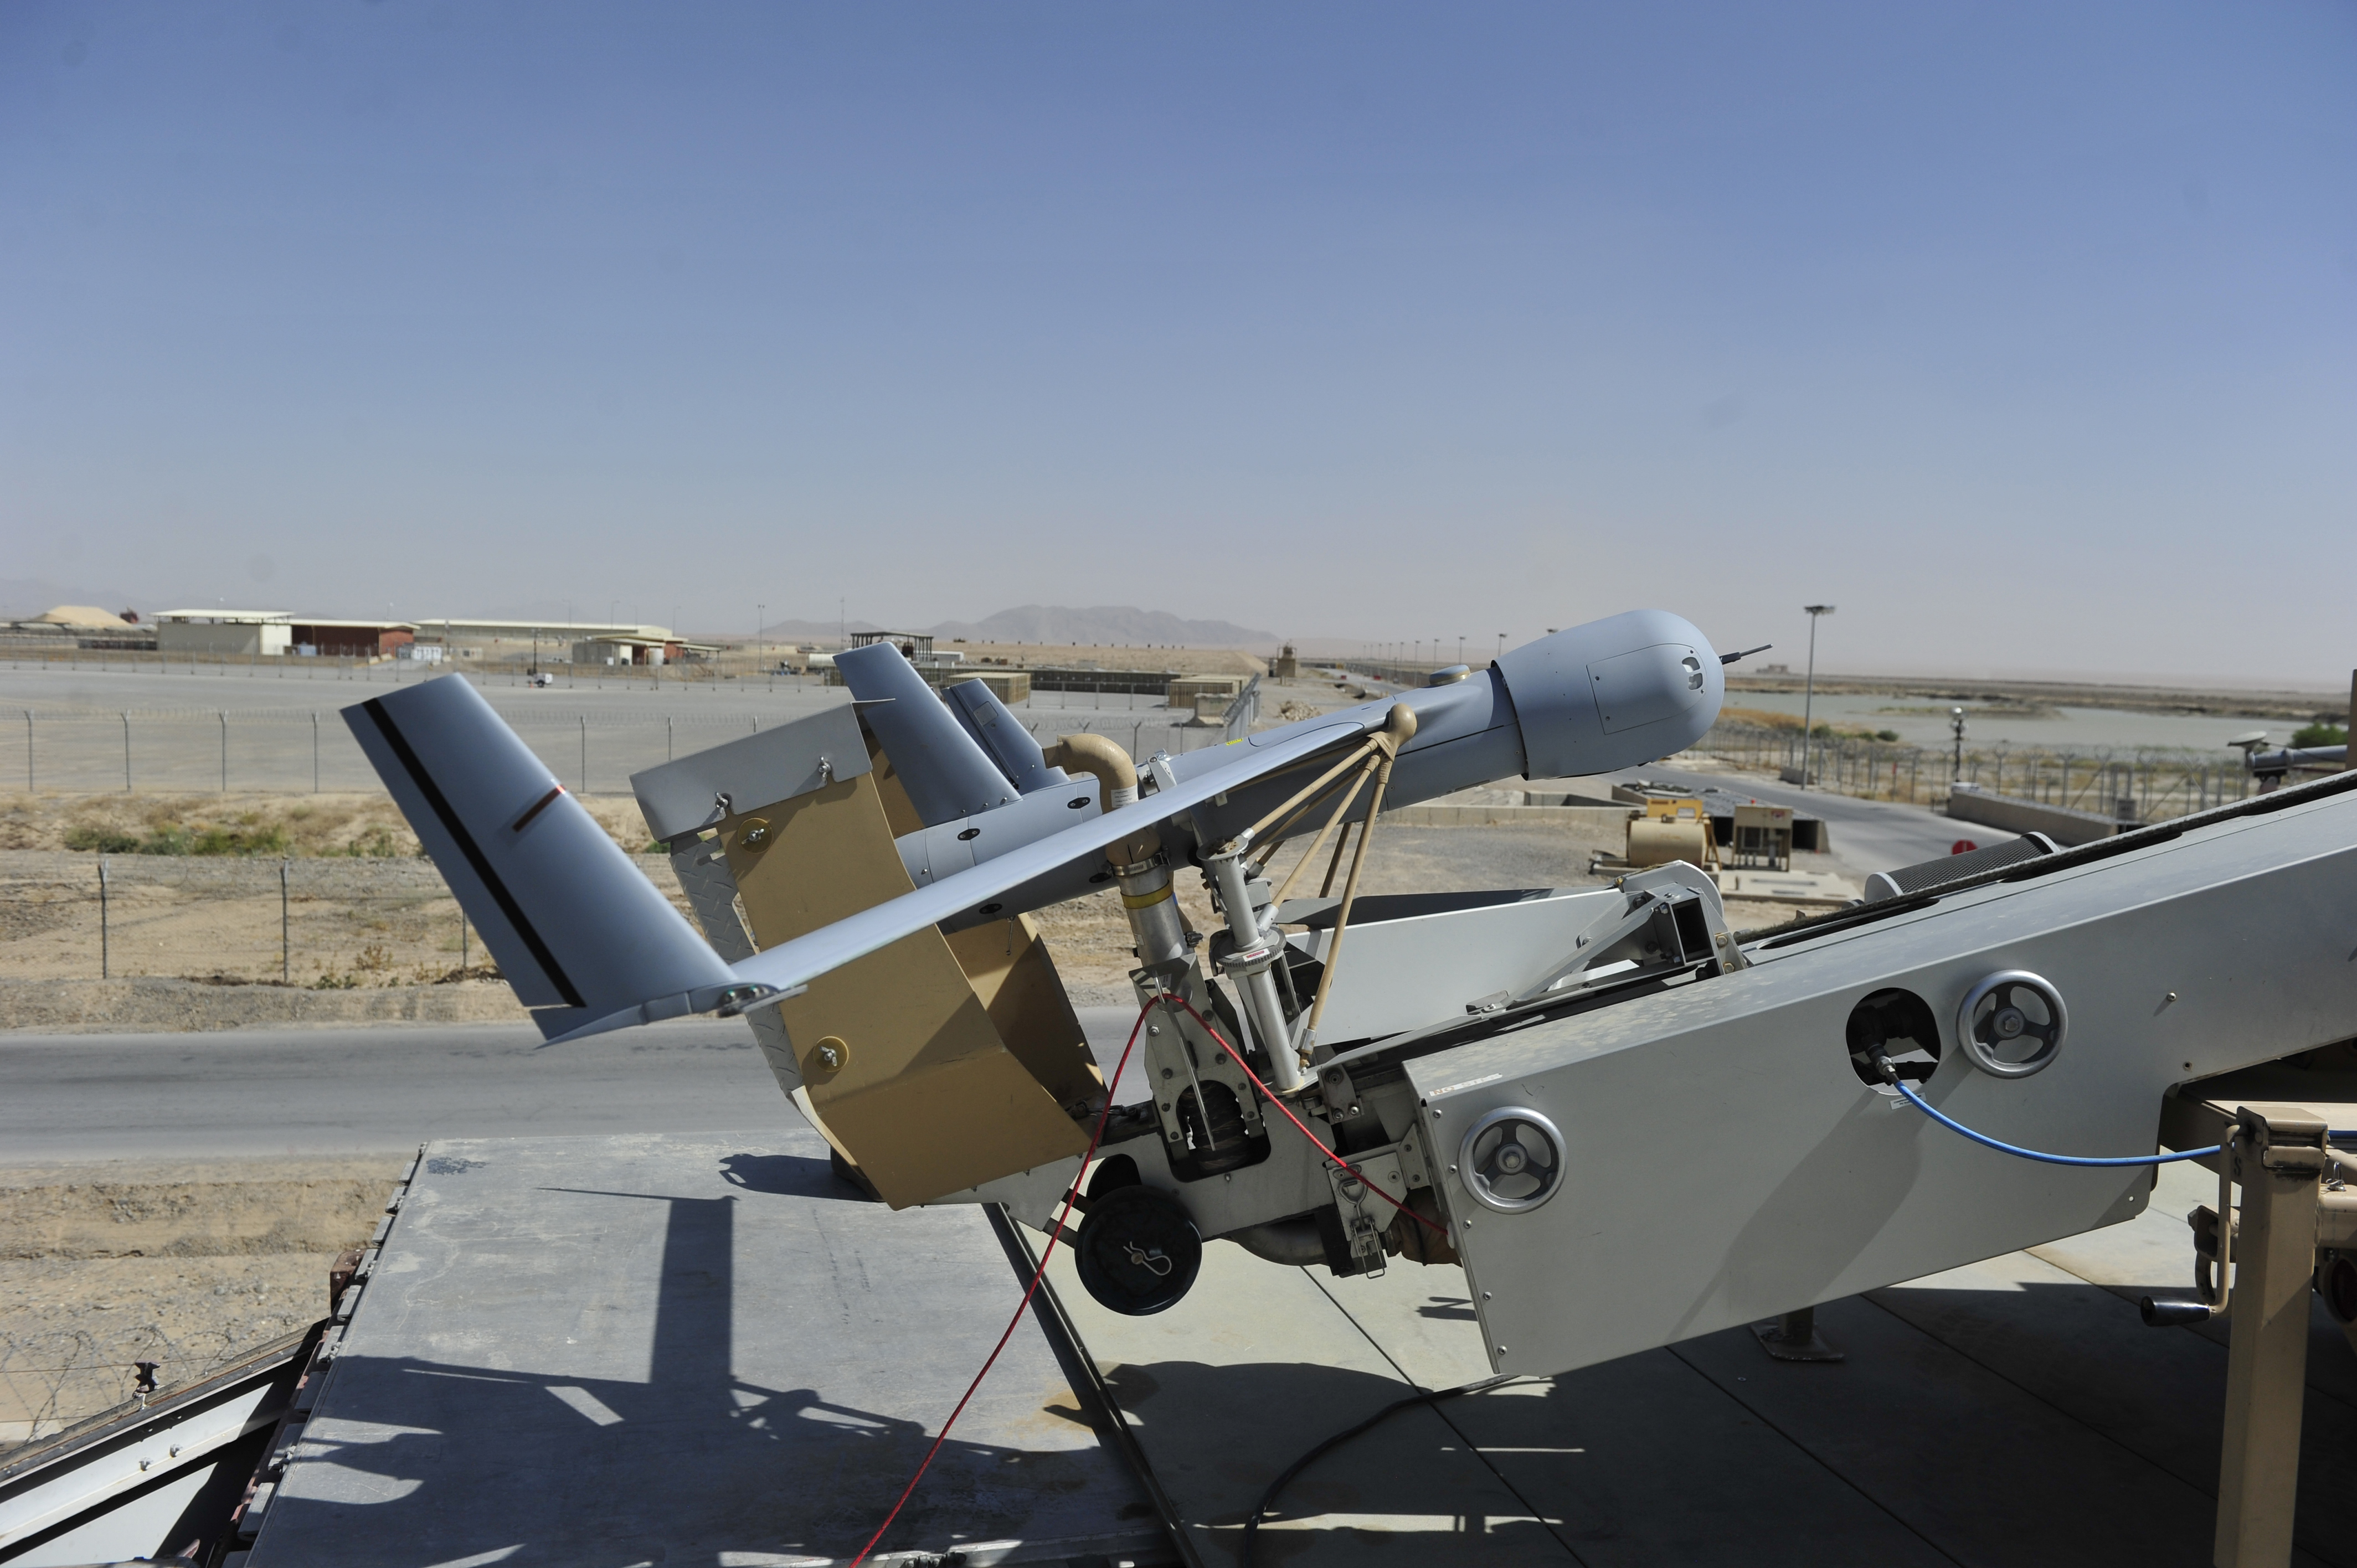 A ScanEagle unmanned aerial vehicle sits ready for launch by Rear Adm. Luke McCollum, vice commander, U.S. Naval Forces Central Command, at Kandahar Airfield. (Lt. Kristine Volk, Resolute Support Public Affairs/U.S. Navy)